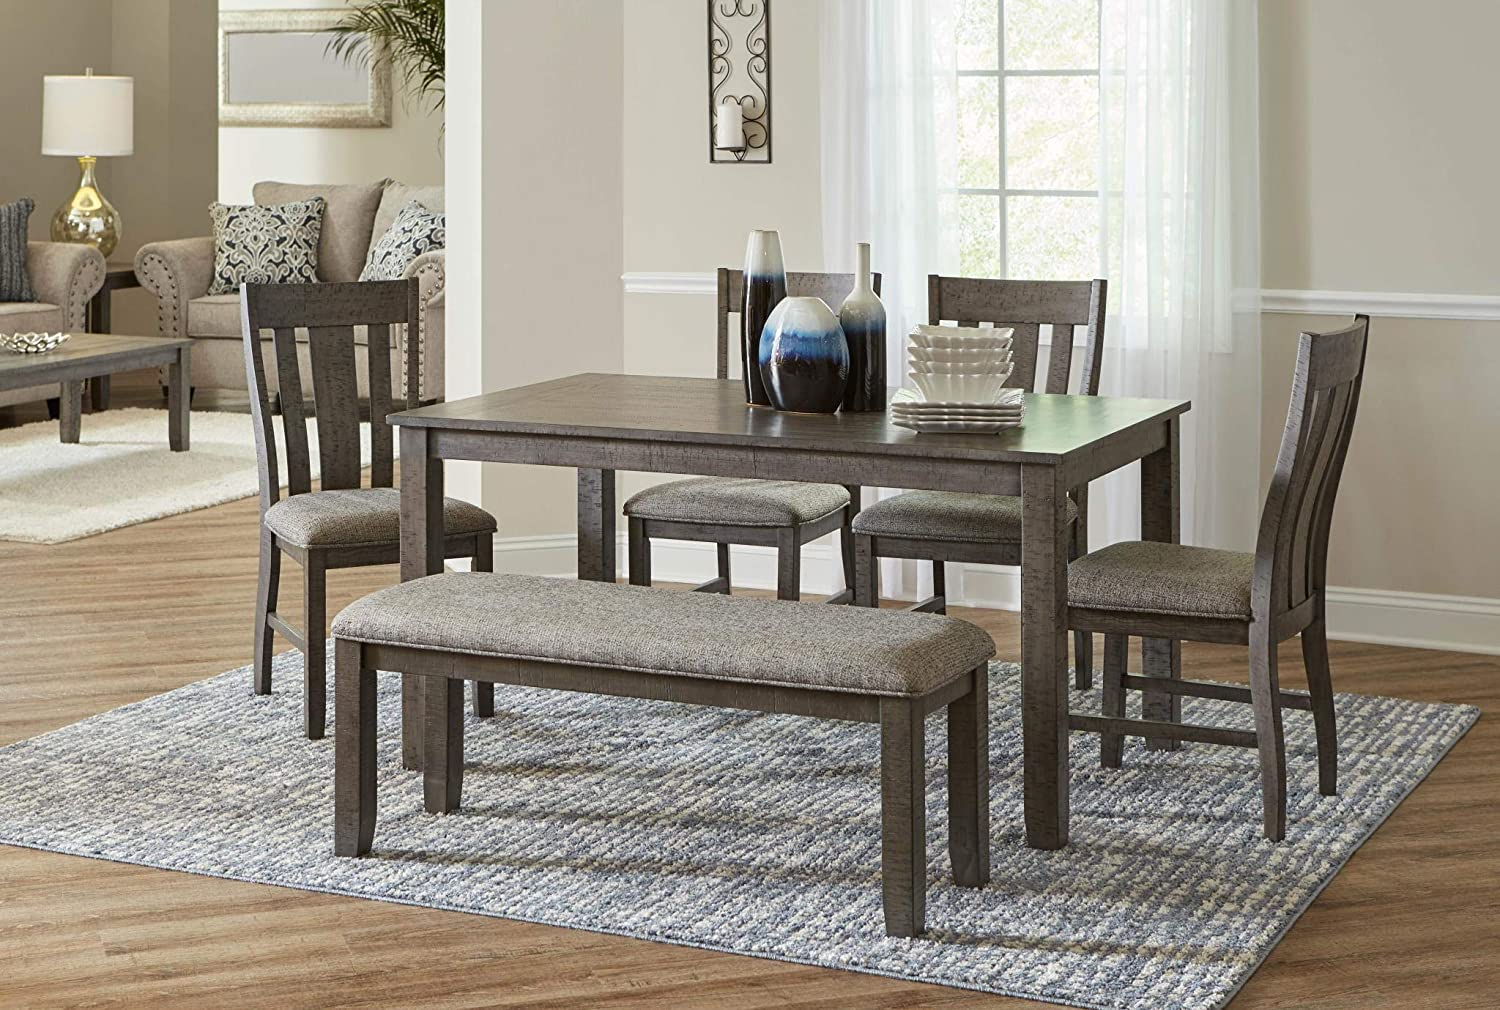 Amazon Com Lane Home Furnishings 6 Pc Set Table 4 Chairs Dining Bench 6pc Grey Table Chair Sets